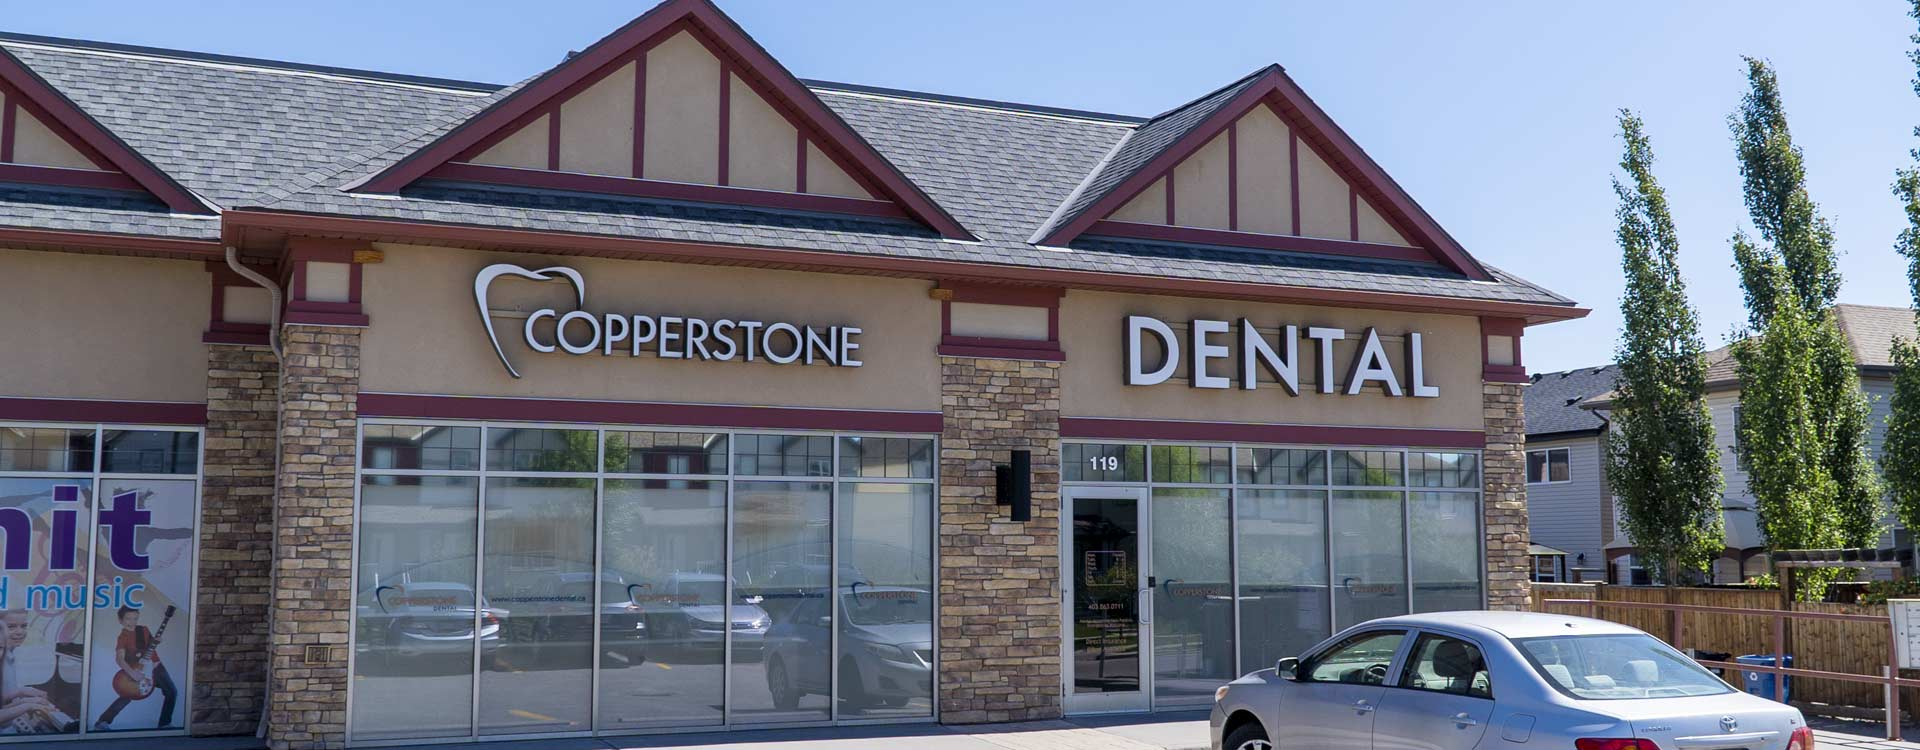 Copperstone Dental SE Calgary